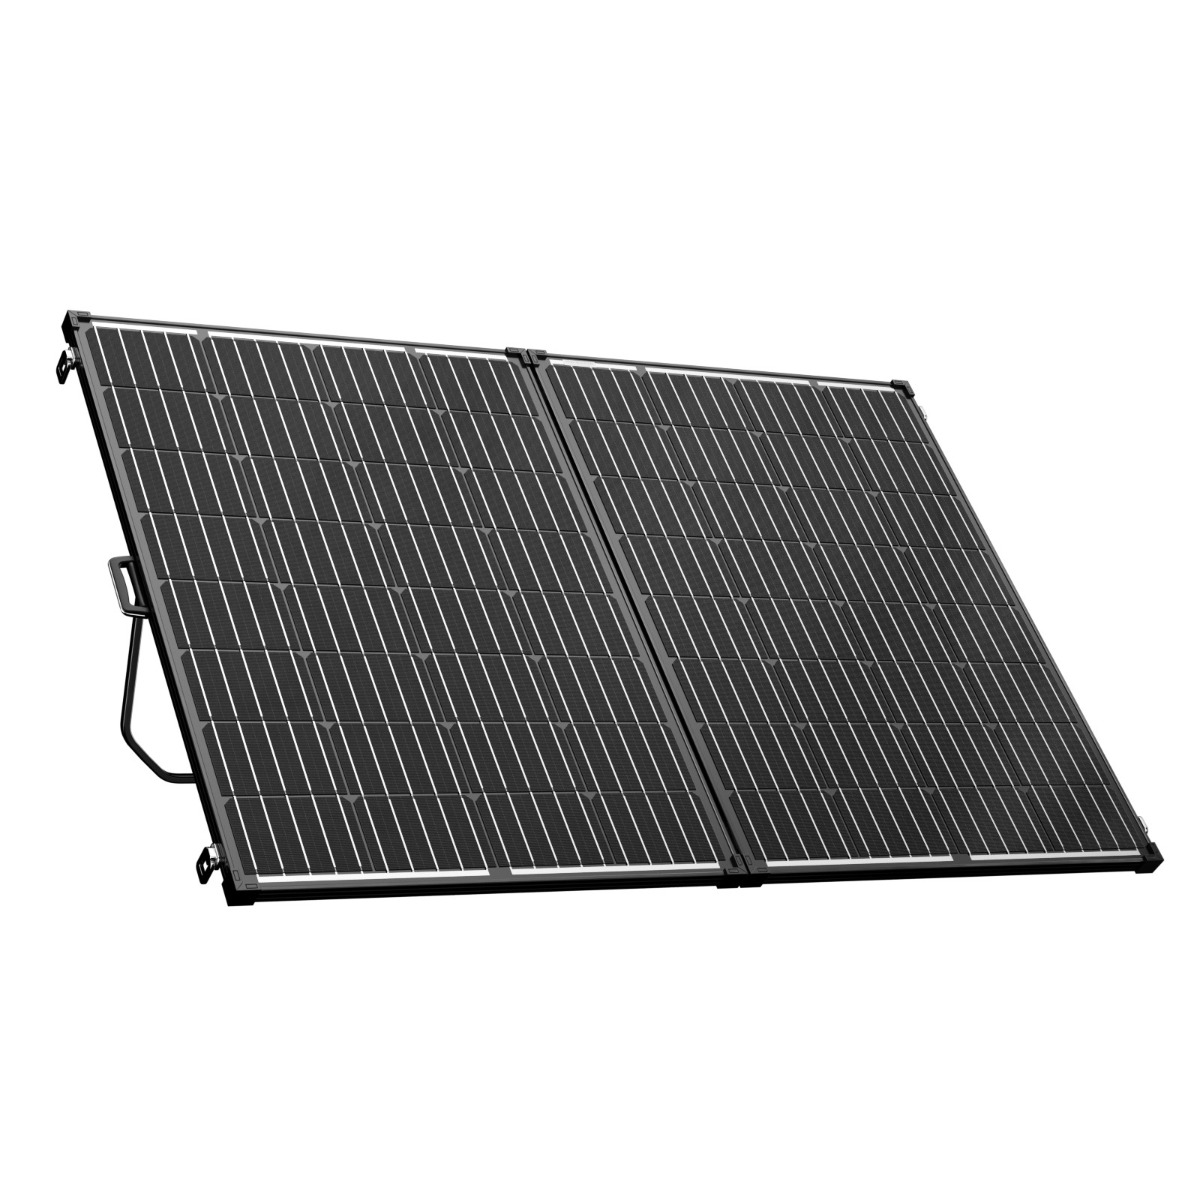 12V 300W Folding Solar Panel Kit 8KG Super Light Mono Portable Battery